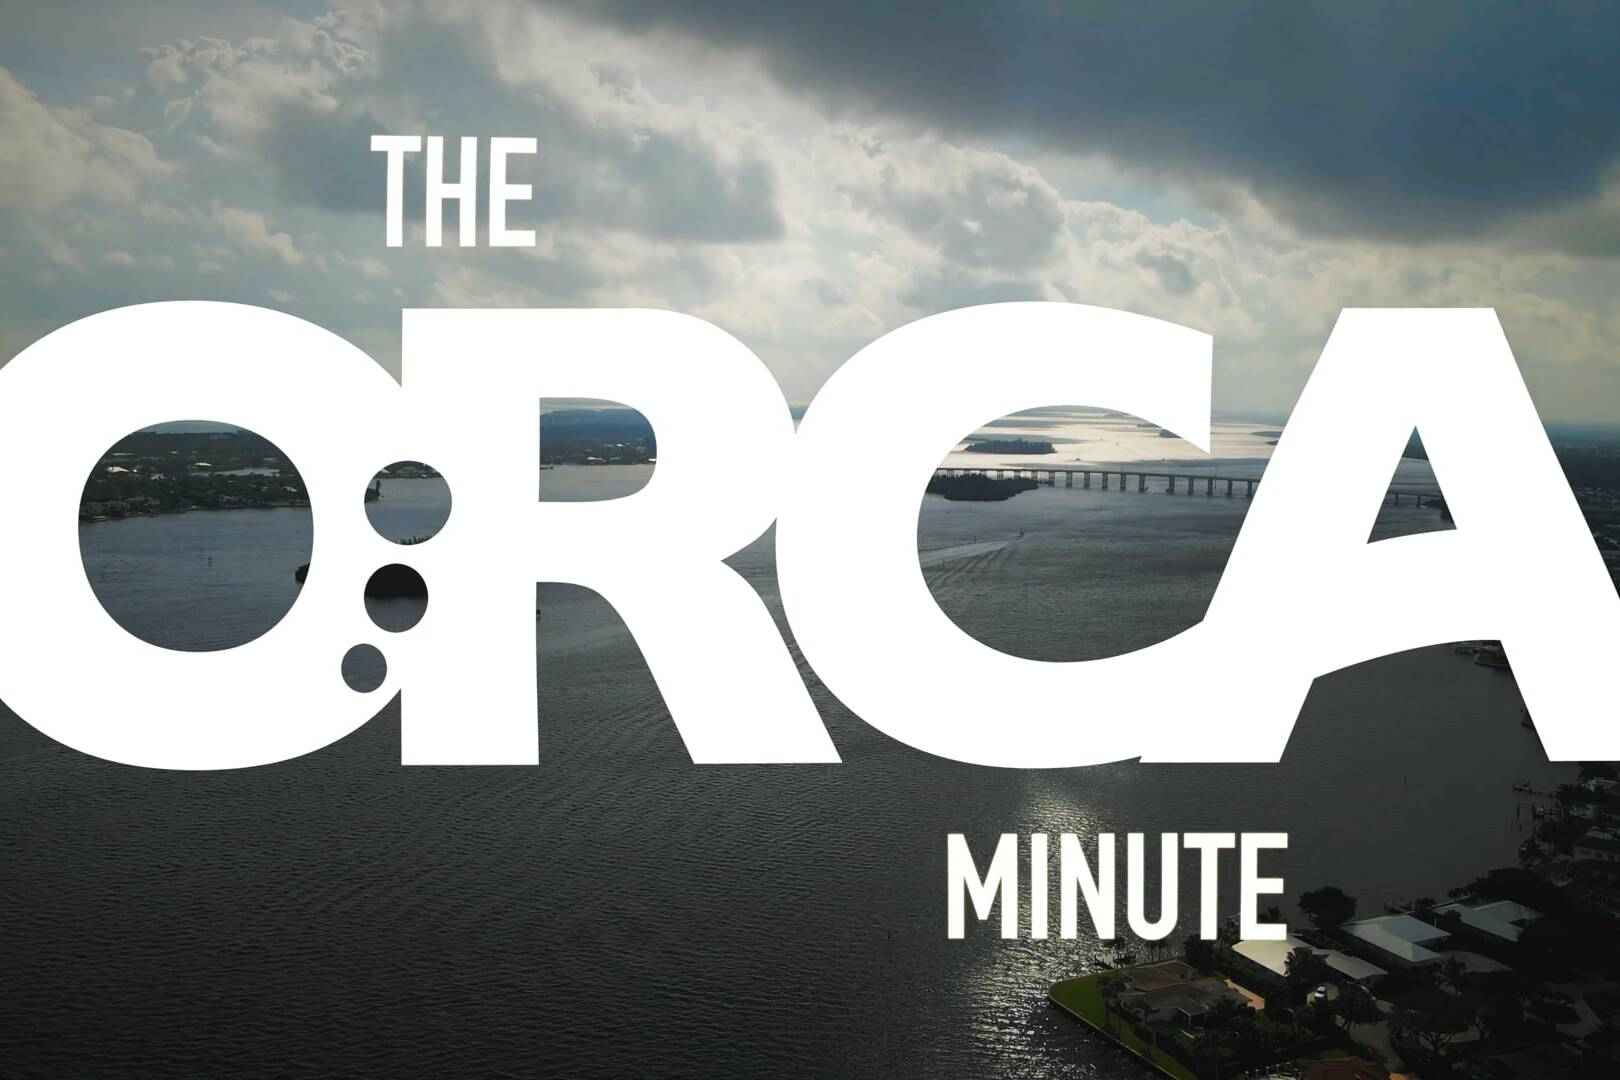 Our team produced a video for ORCA about Kilroys monitoring the Indian River Lagoon.